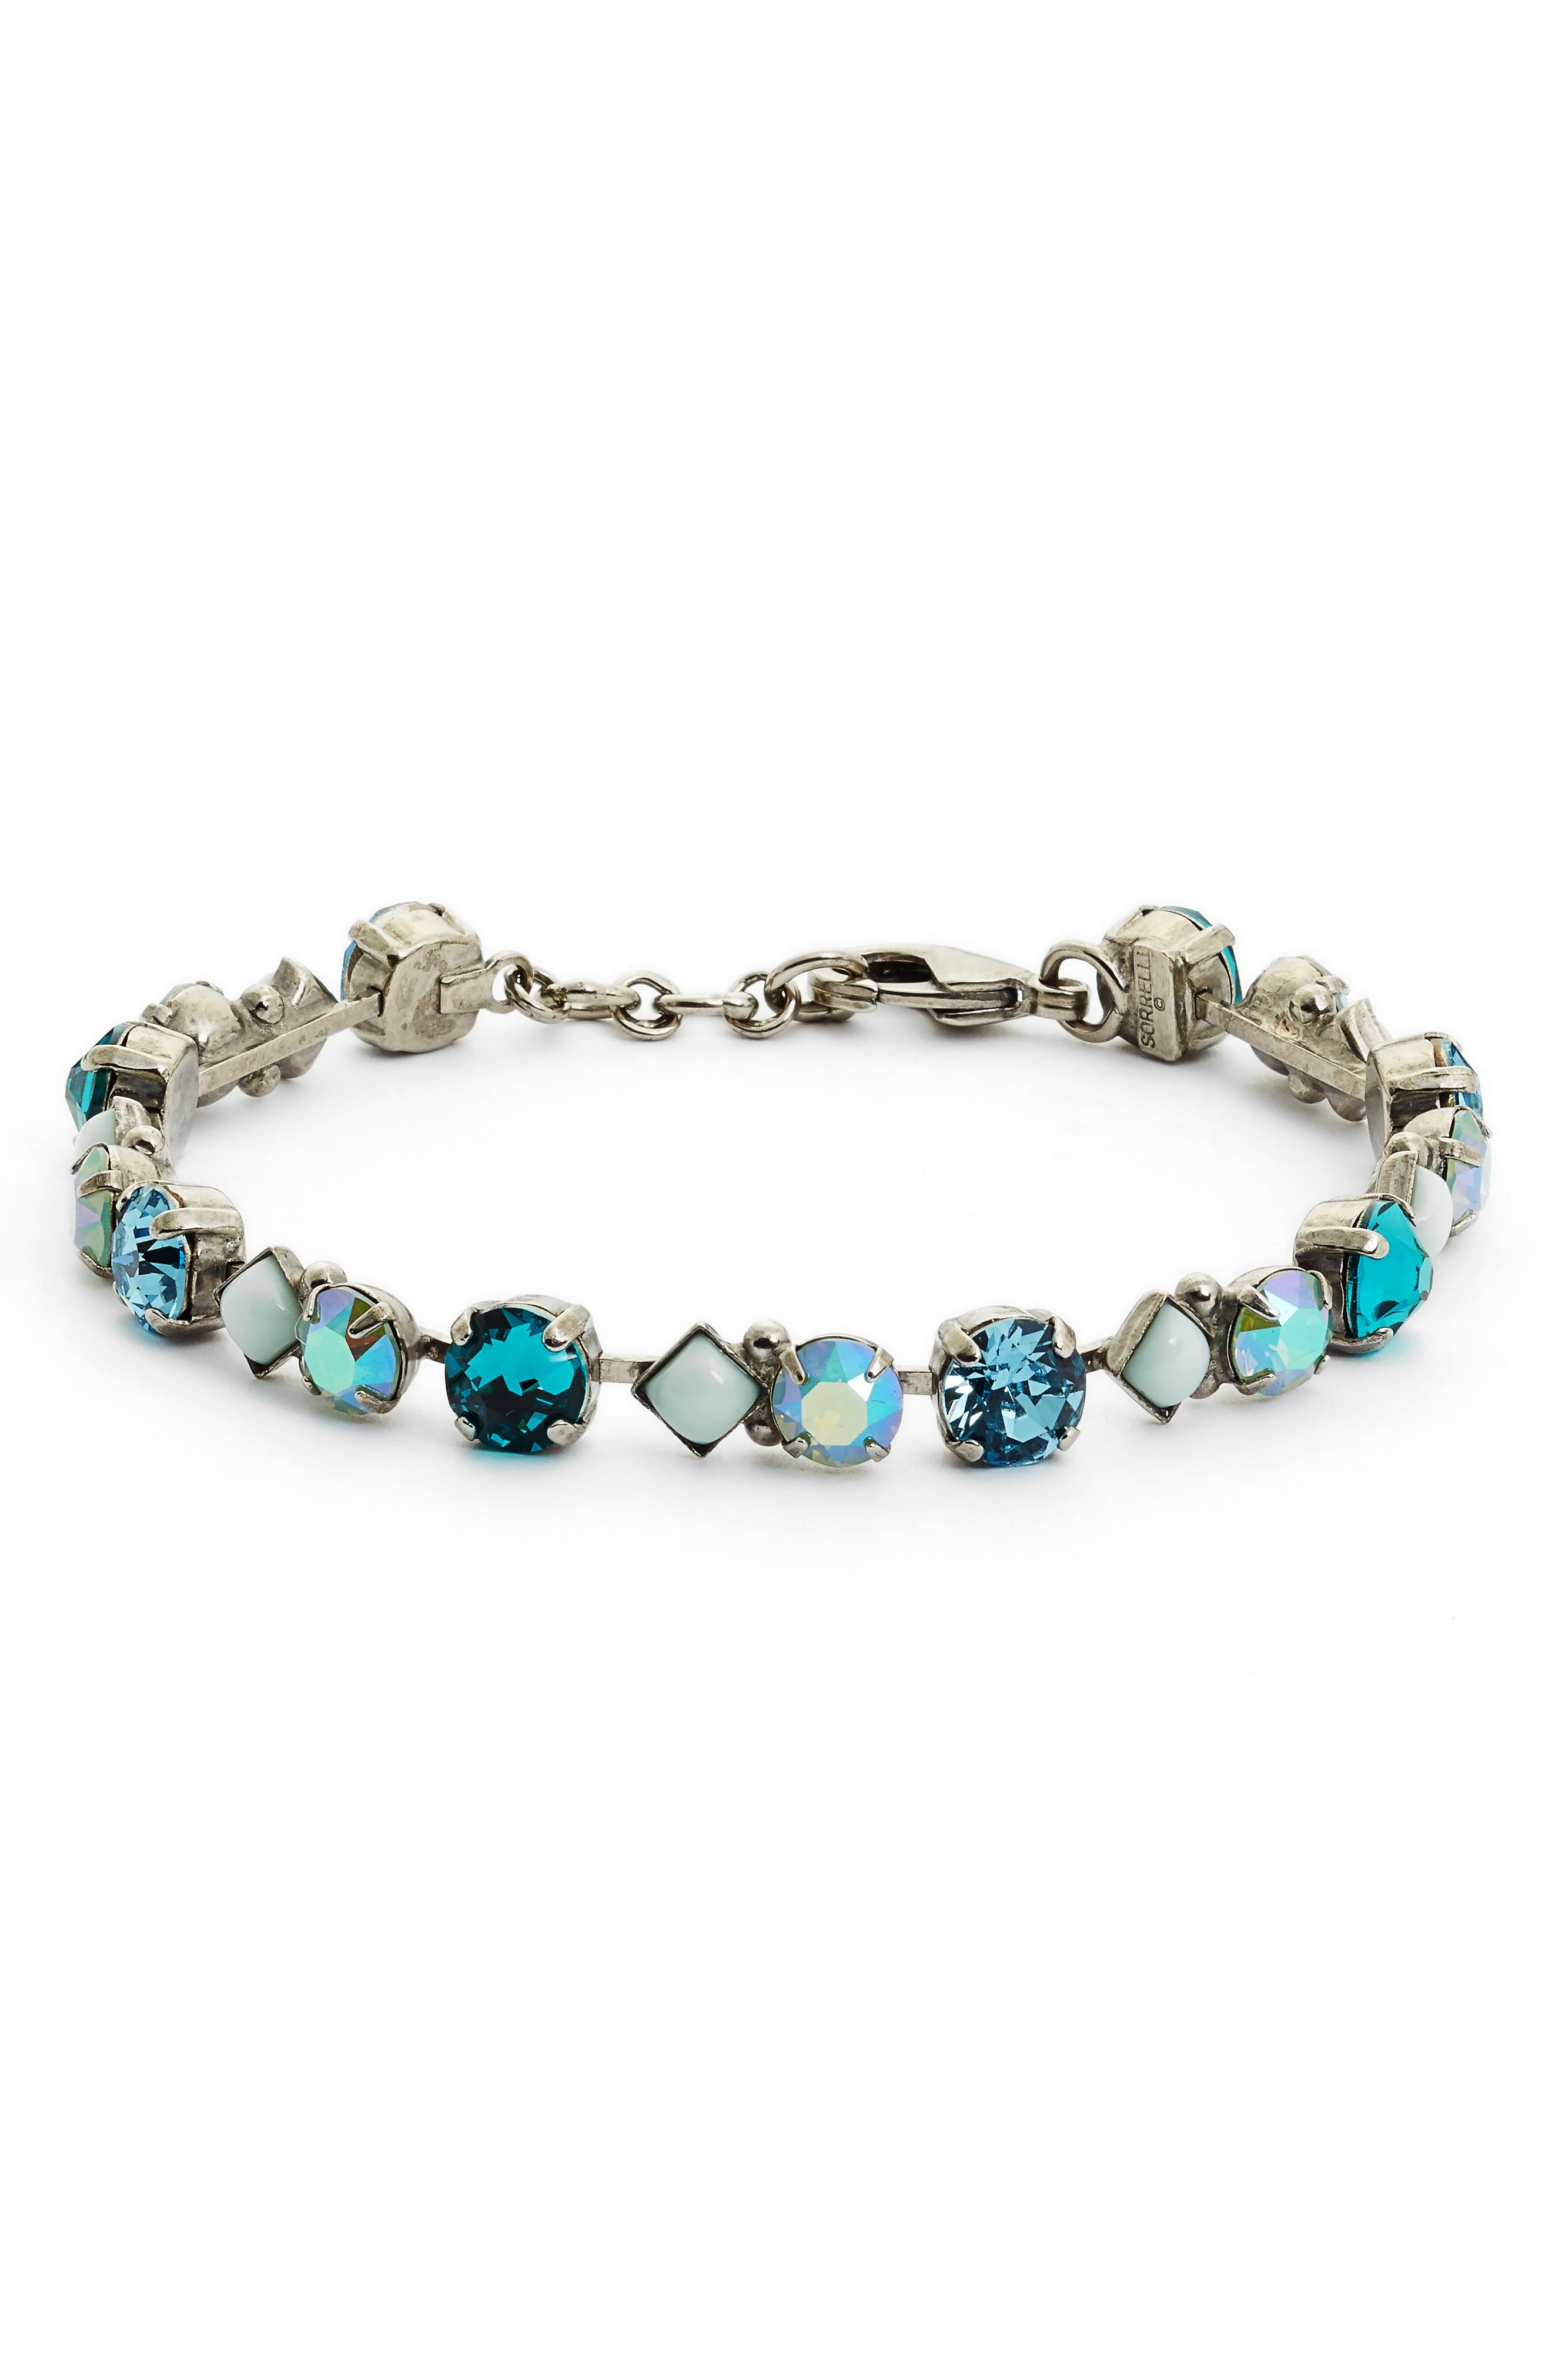 Darling Crystal Tennis Bracelet,                             Main thumbnail 1, color,                             Blue-Green